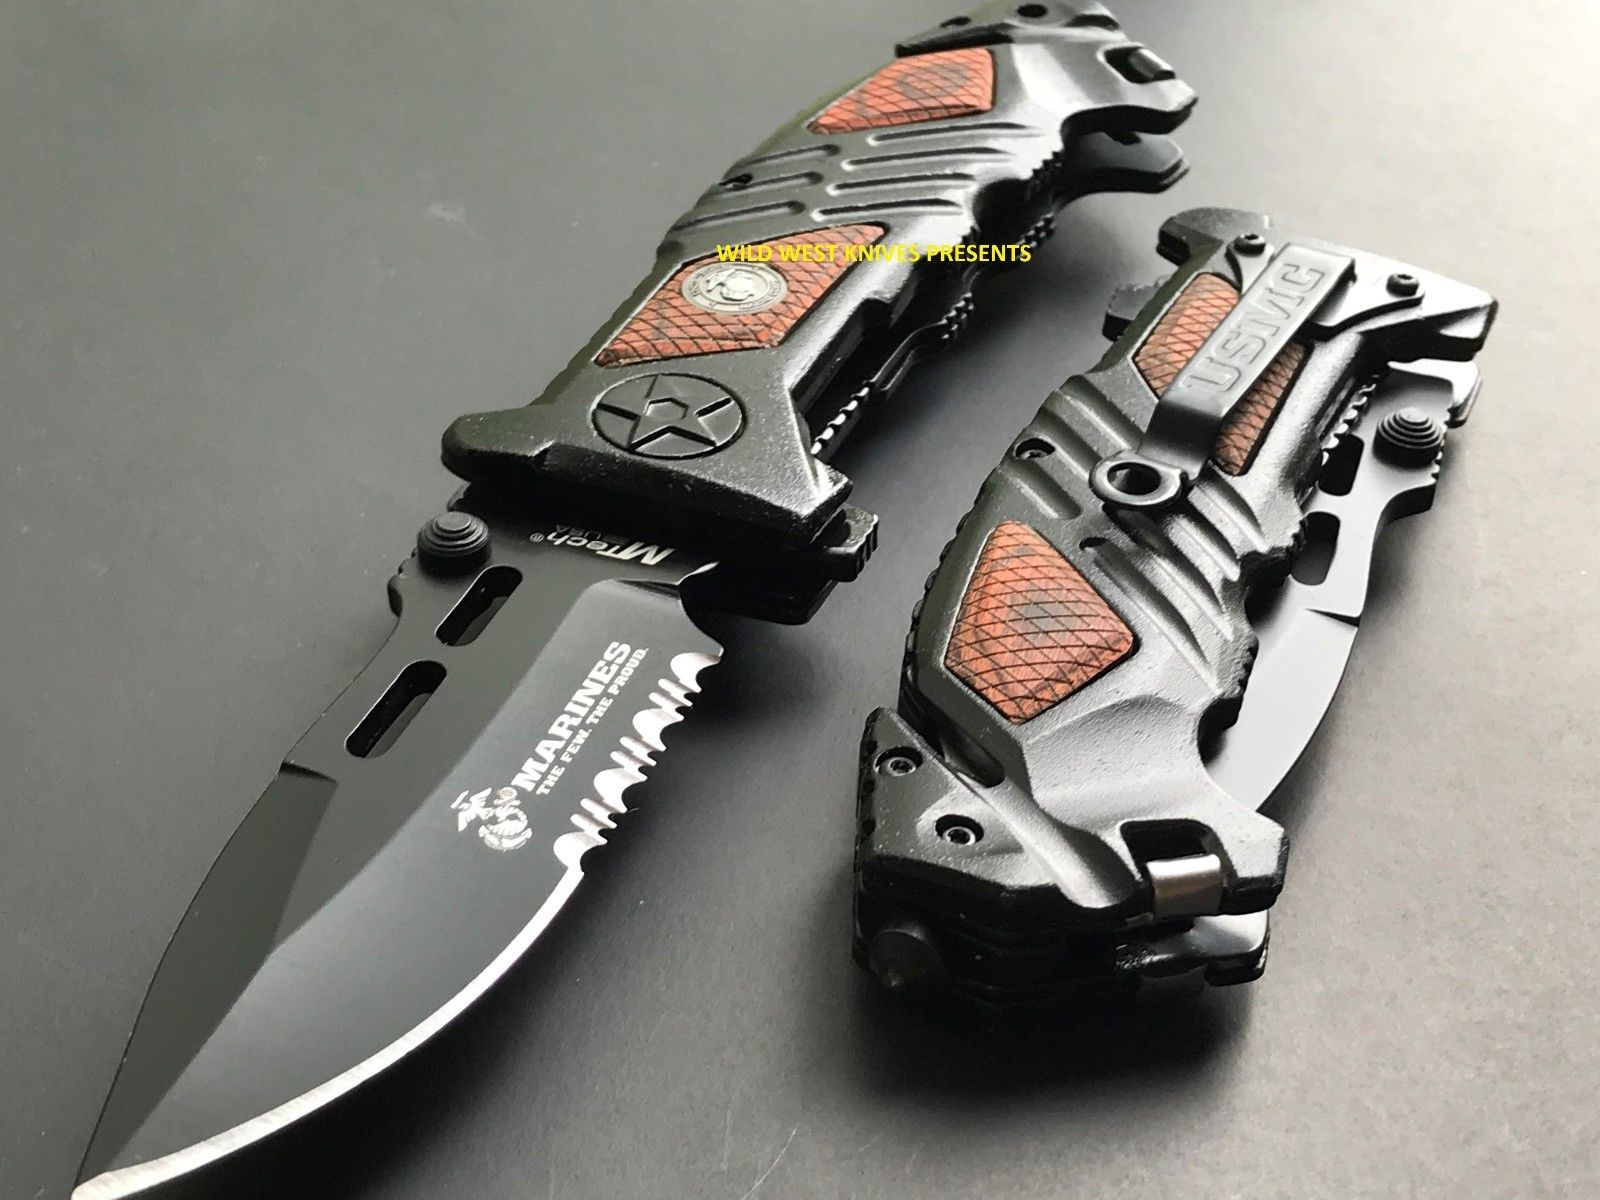 8 25 Mtech Us Marine Spring Assisted Official Pocket Knife Ma 1023wd